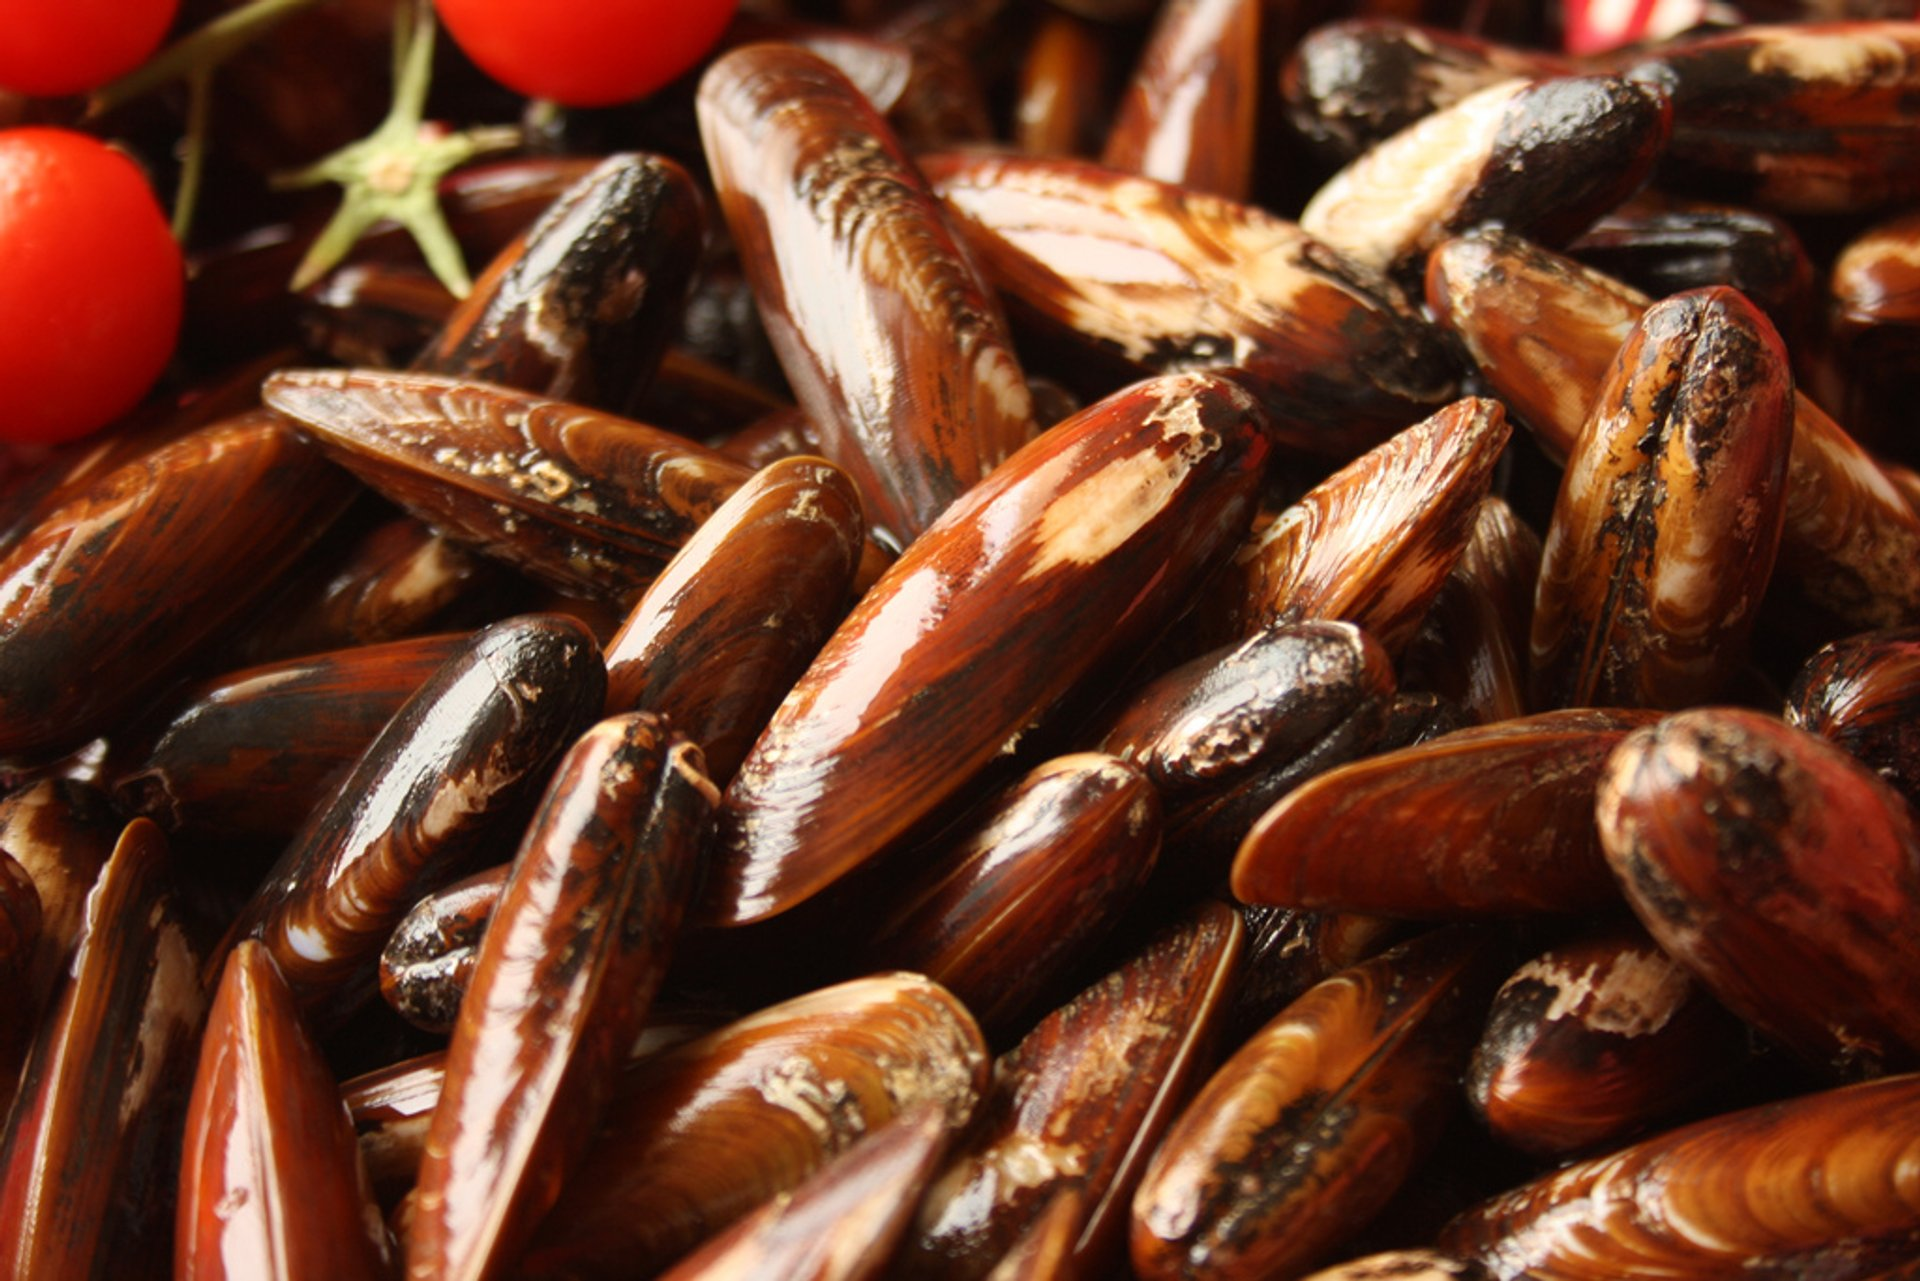 Mussel Season in Albania 2020 - Best Time